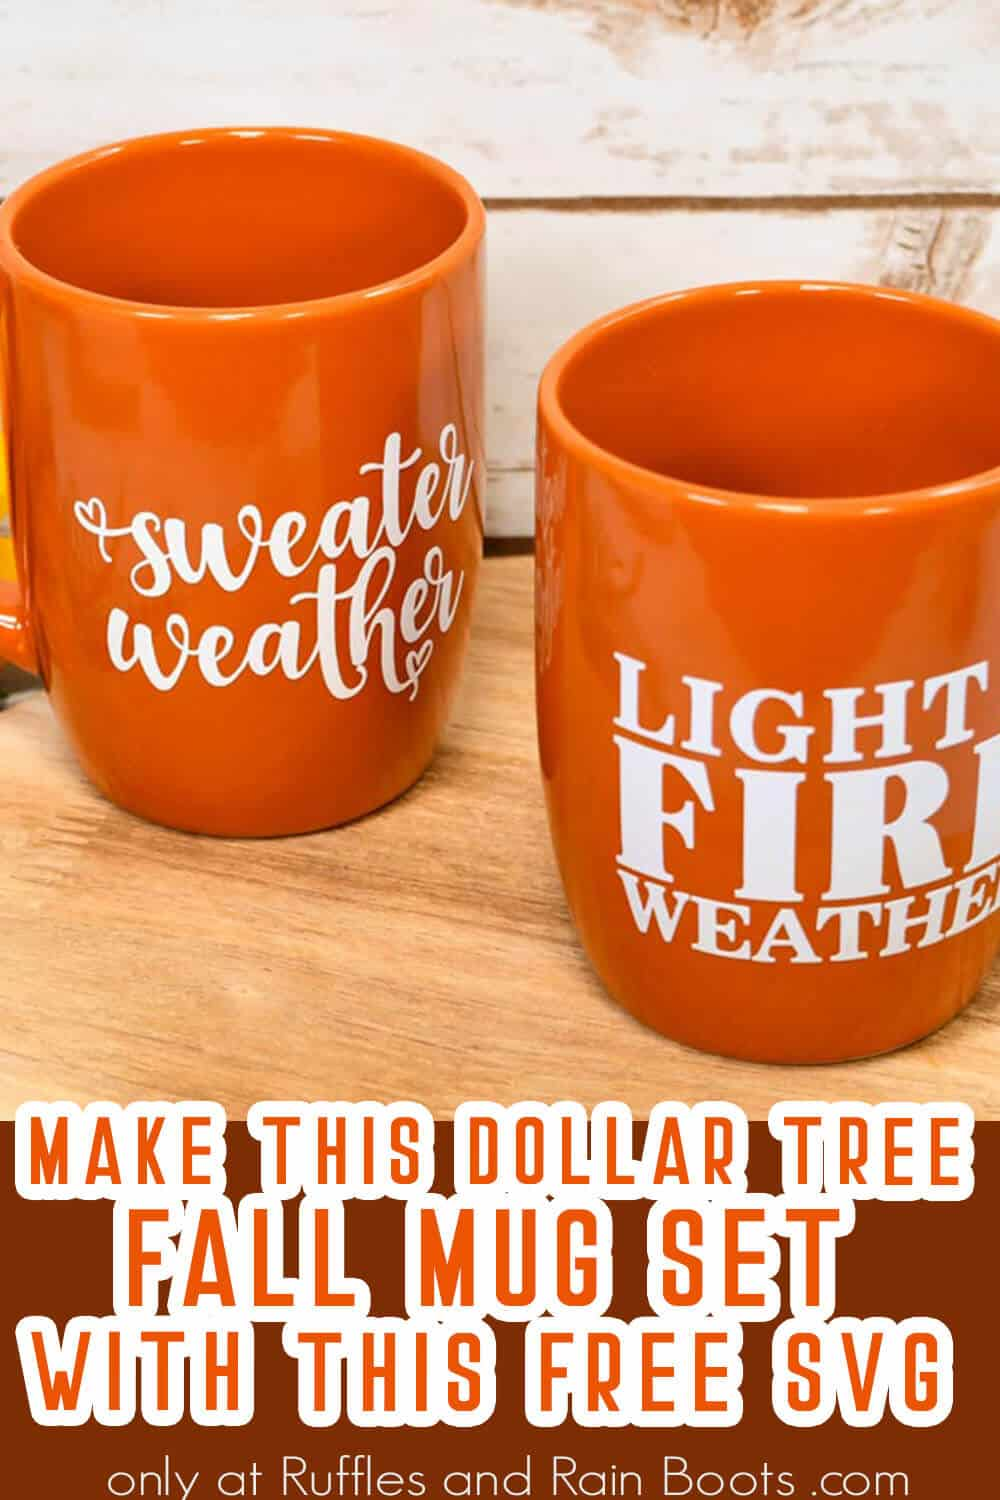 cricut joy craft to make a dollar tree fall mug with text which reads make this dollar tree fall mug set with this free svg